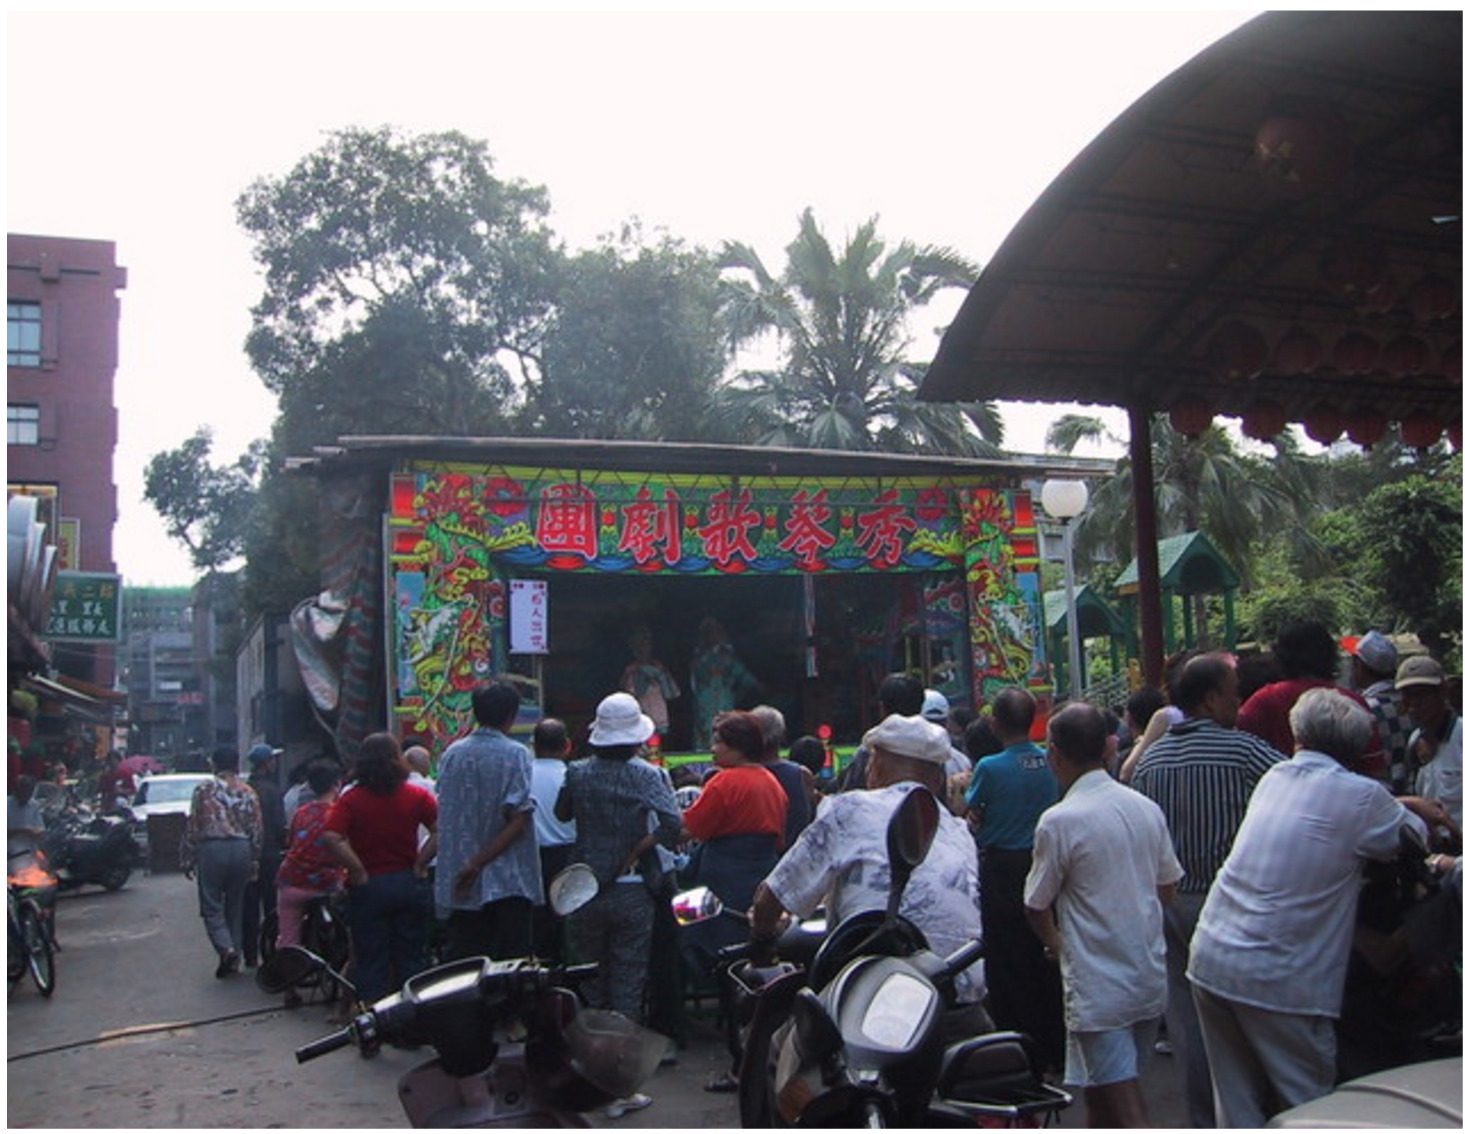 From Yi Yiing Chen: The Taiwanese opera's outdoor setting,a temporary stage next to my grandmother's place.